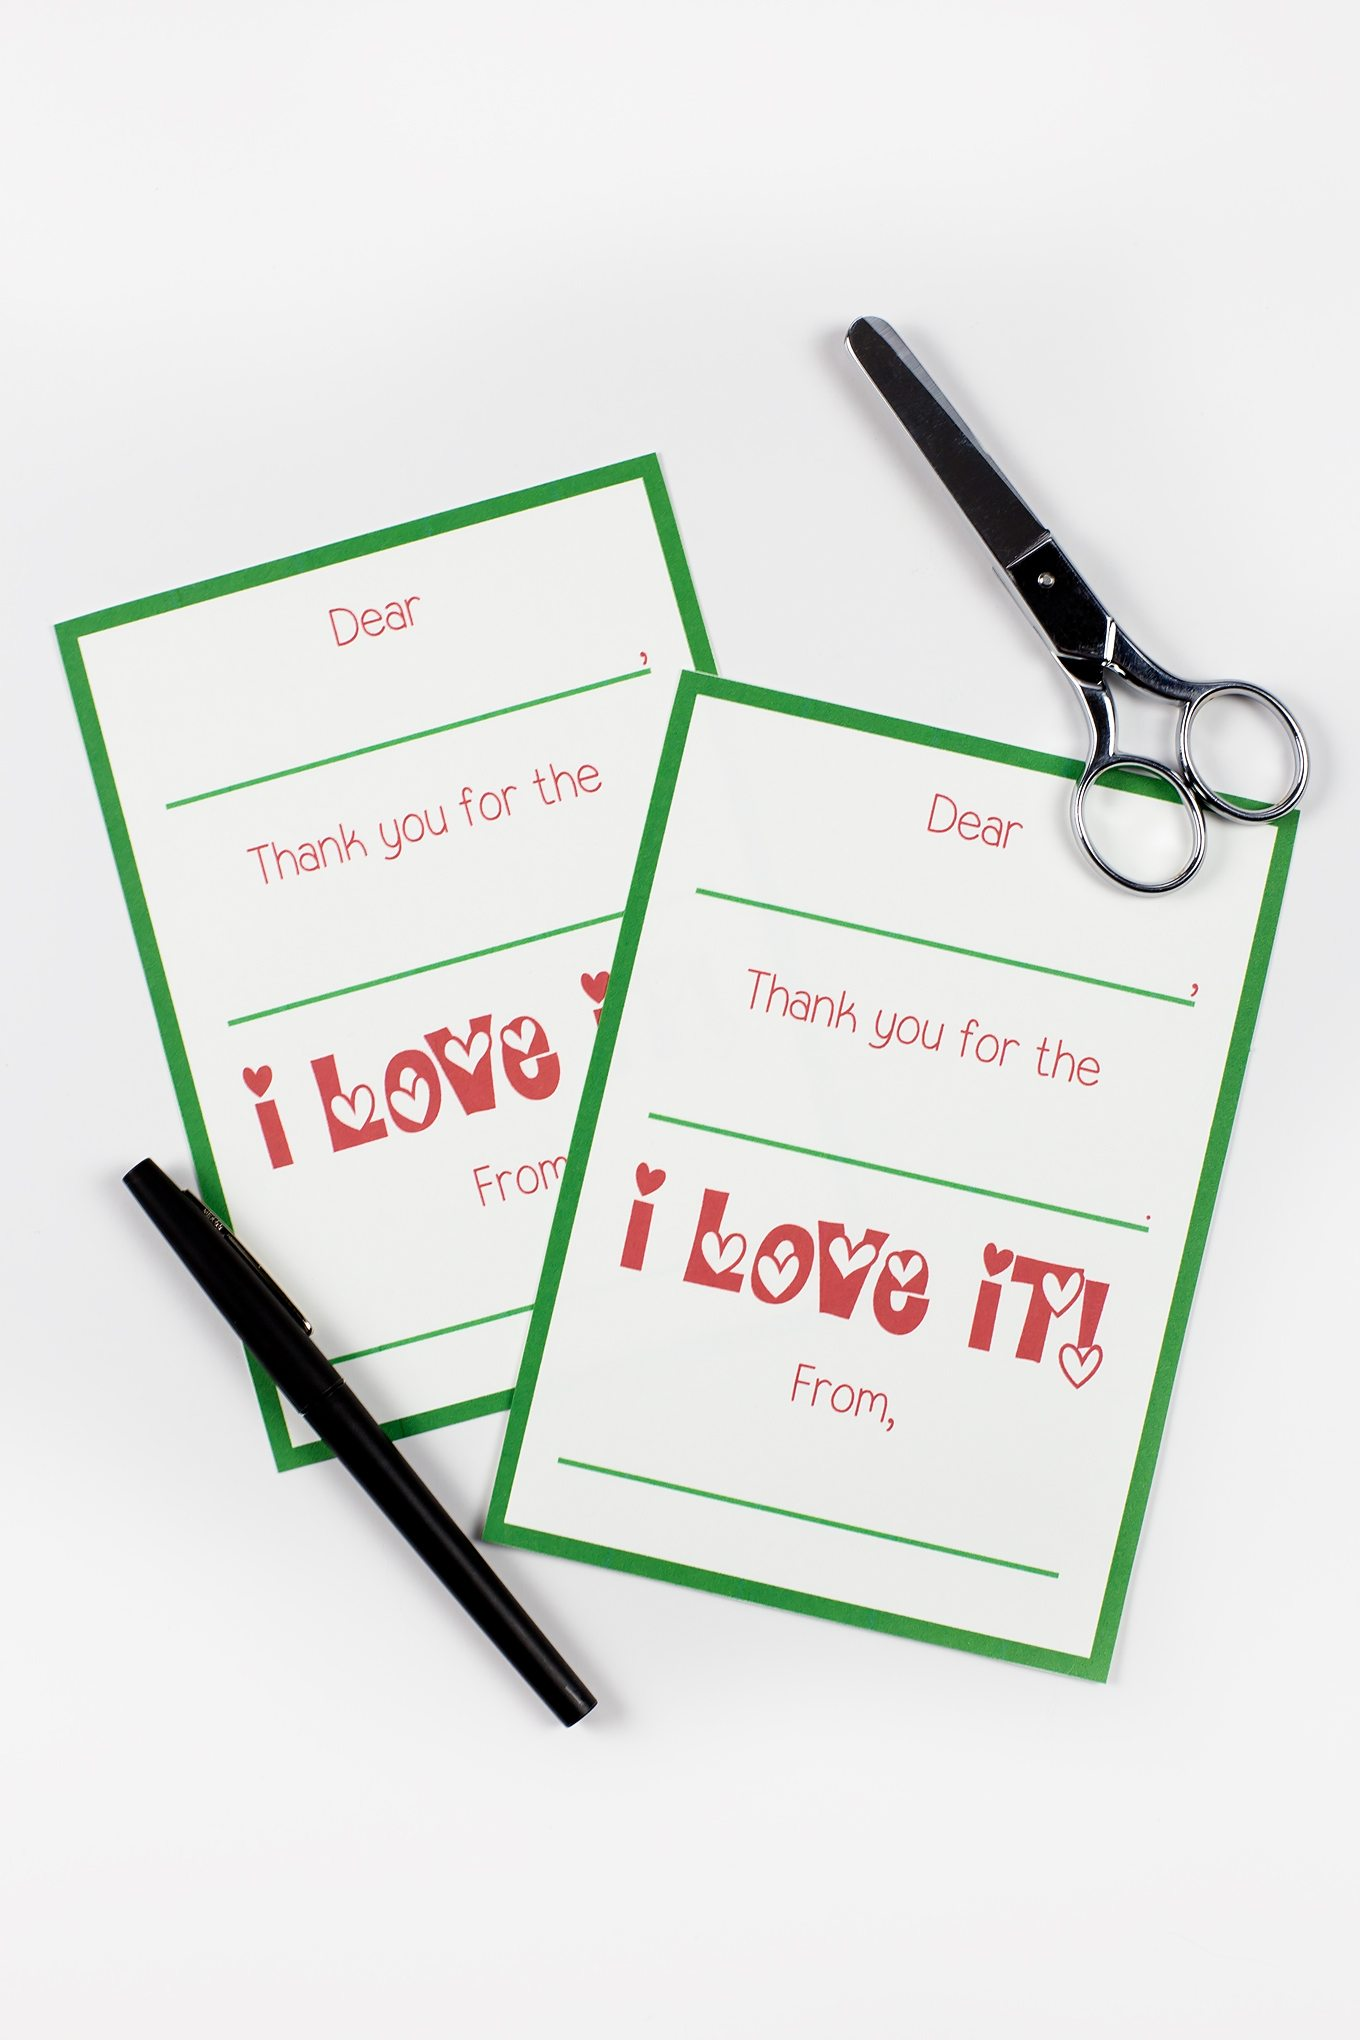 picture relating to Free Printable Thank You referred to as Printable Xmas Thank Oneself Playing cards